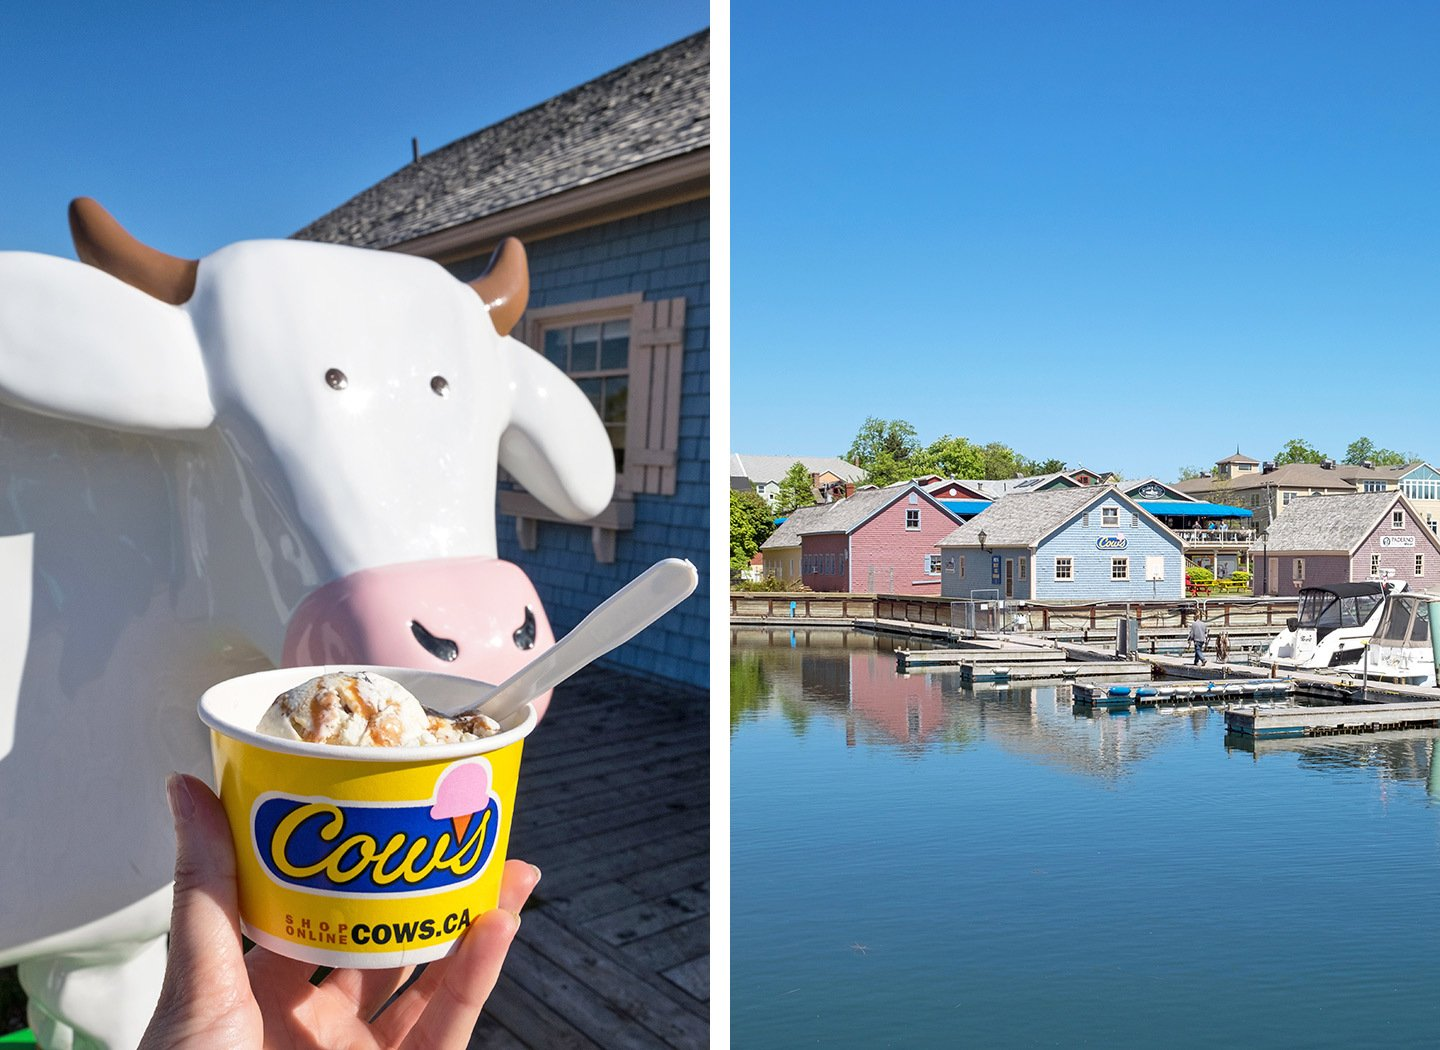 Cows Creamery ice cream in Charlottetown, Prince Edward Island